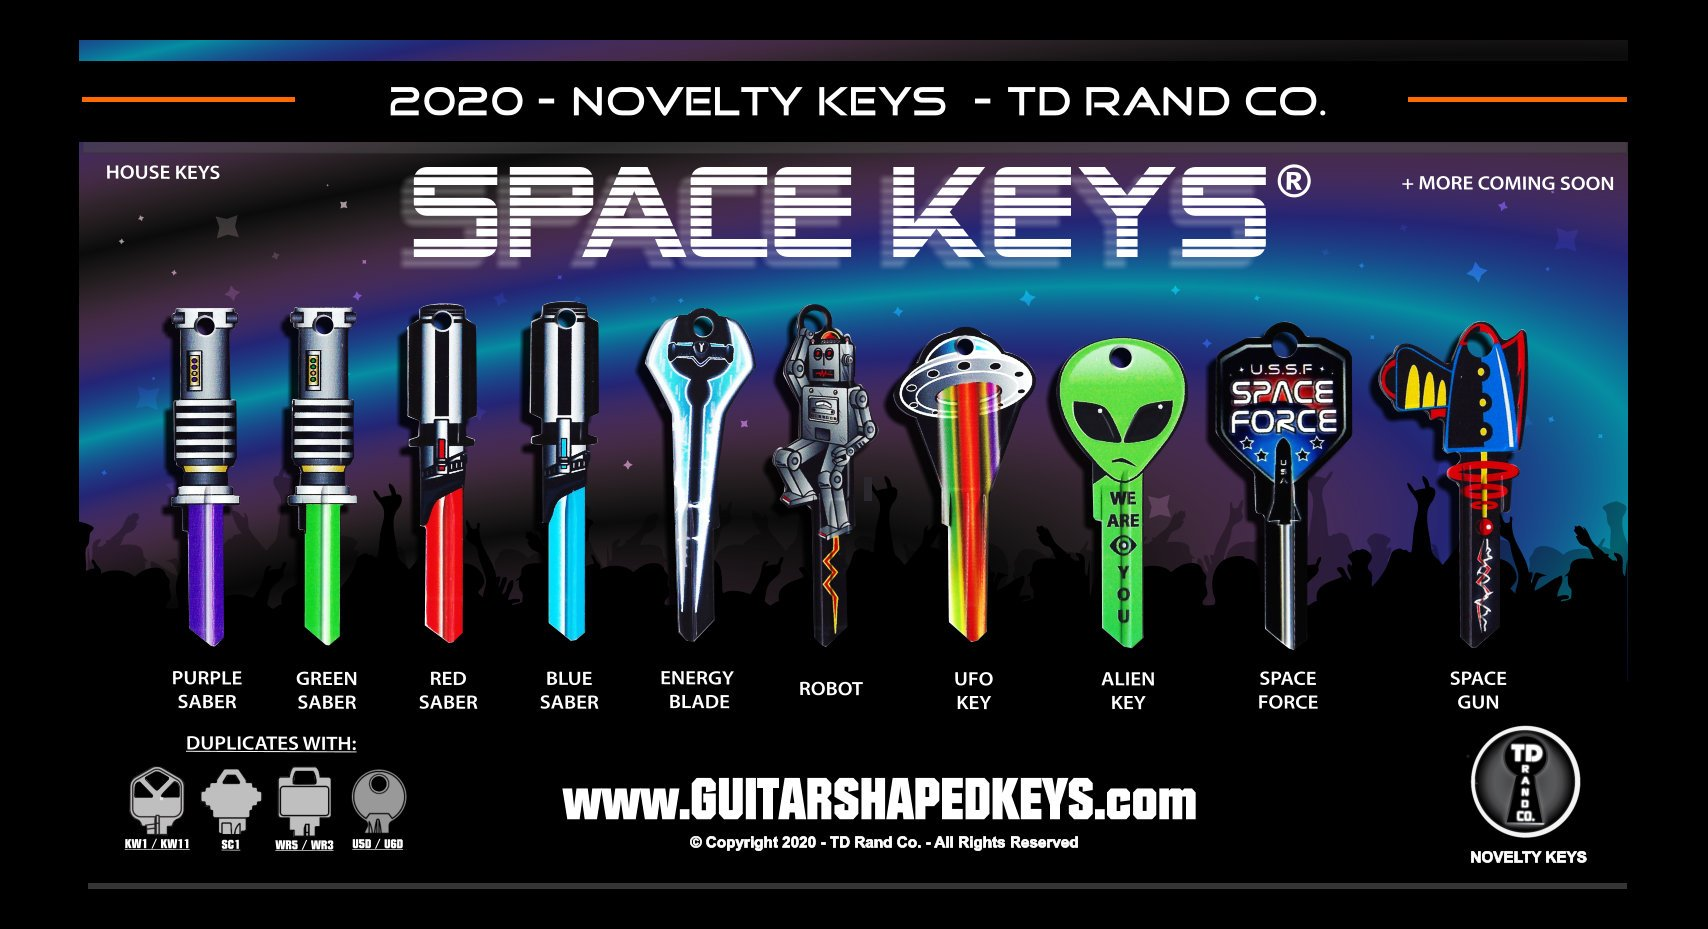 Rock Star Keys